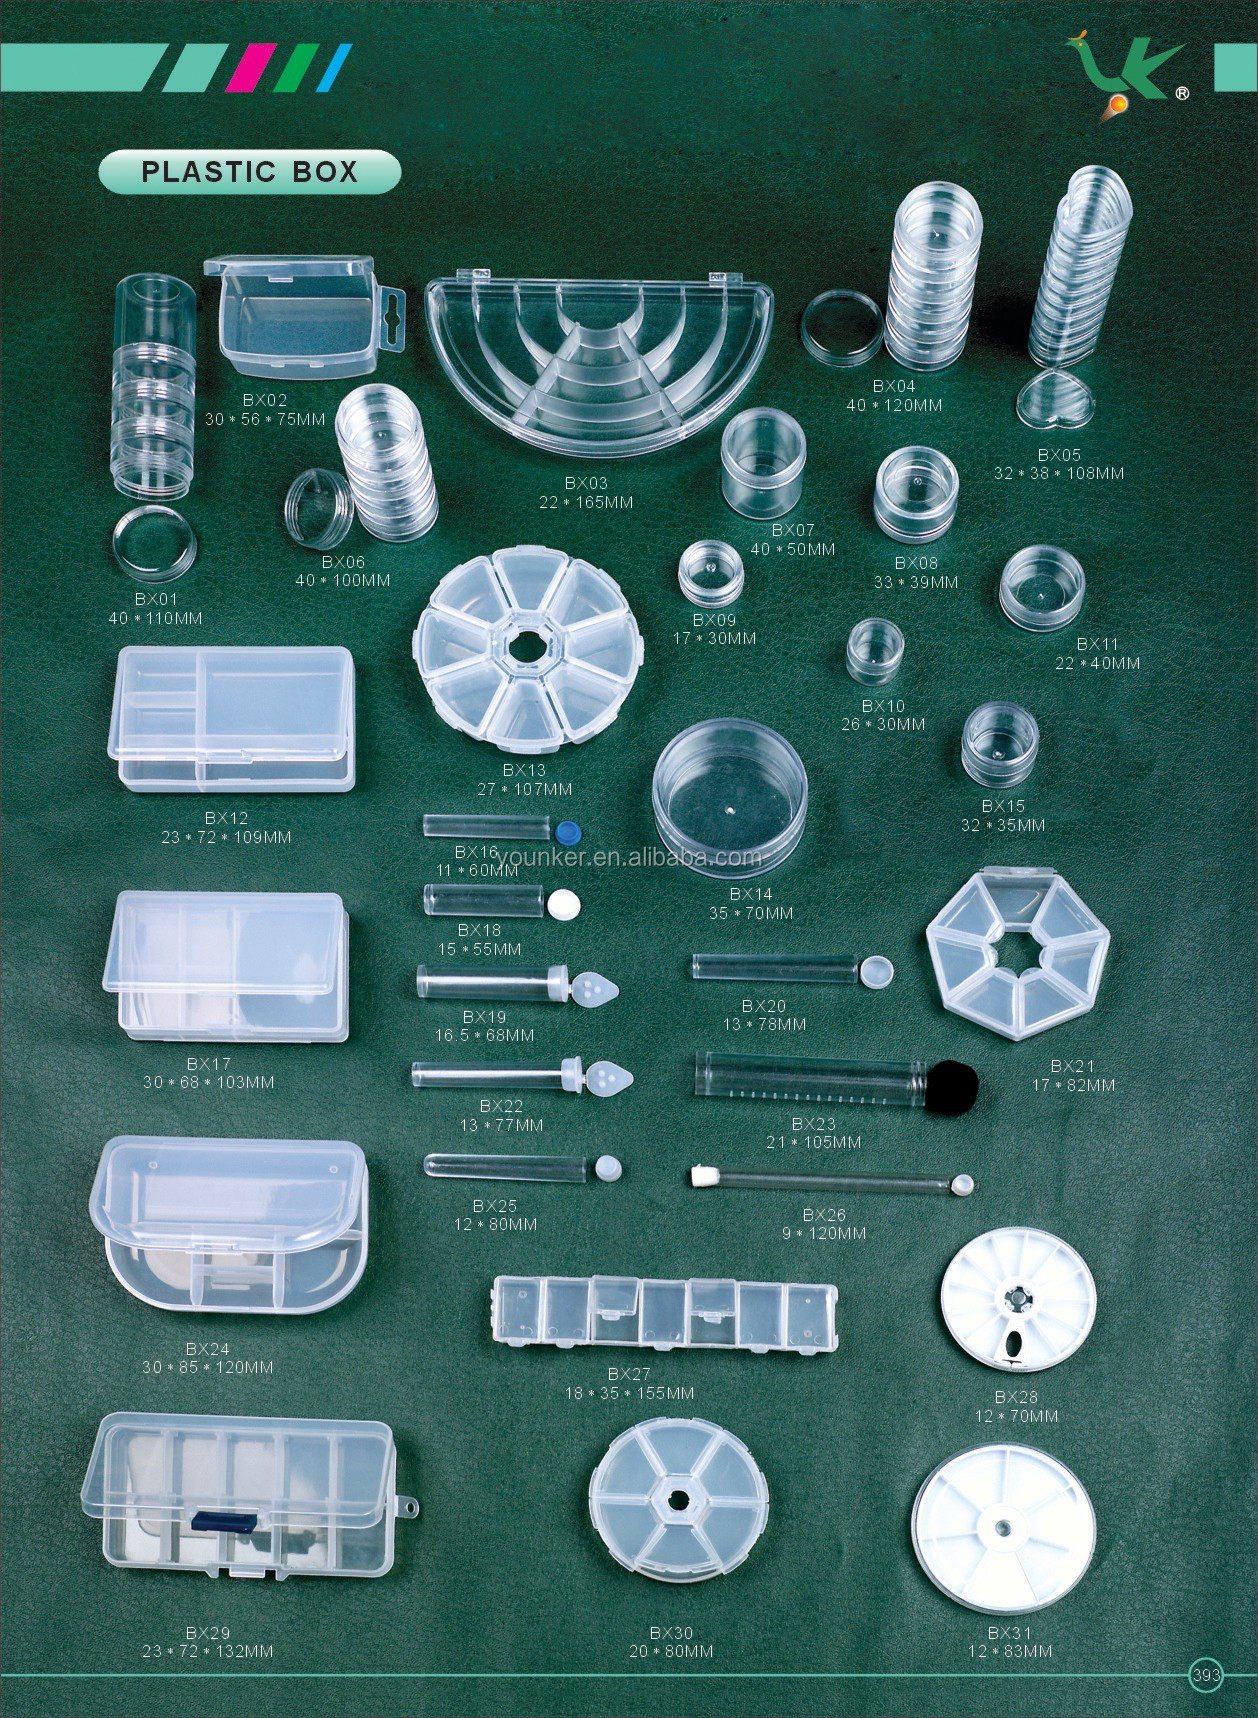 PS Plastic Box Used for Beads and Jewelry Finding packaging.